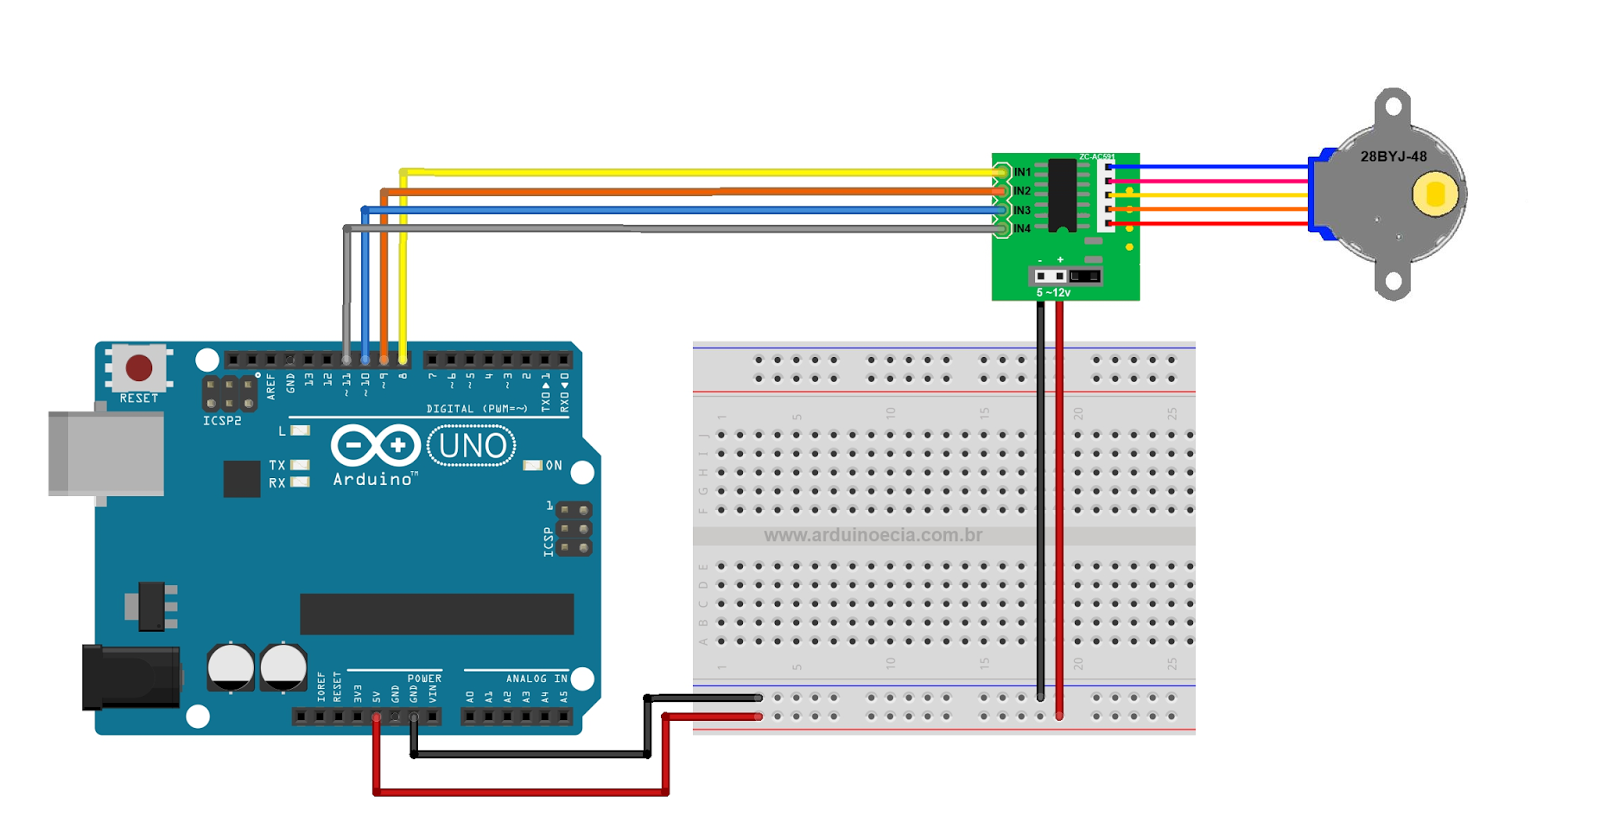 Long S Stepper Motor Wiring Diagram Rj12 To Rj45 Attempted Fun With Engineering Arduino Library For